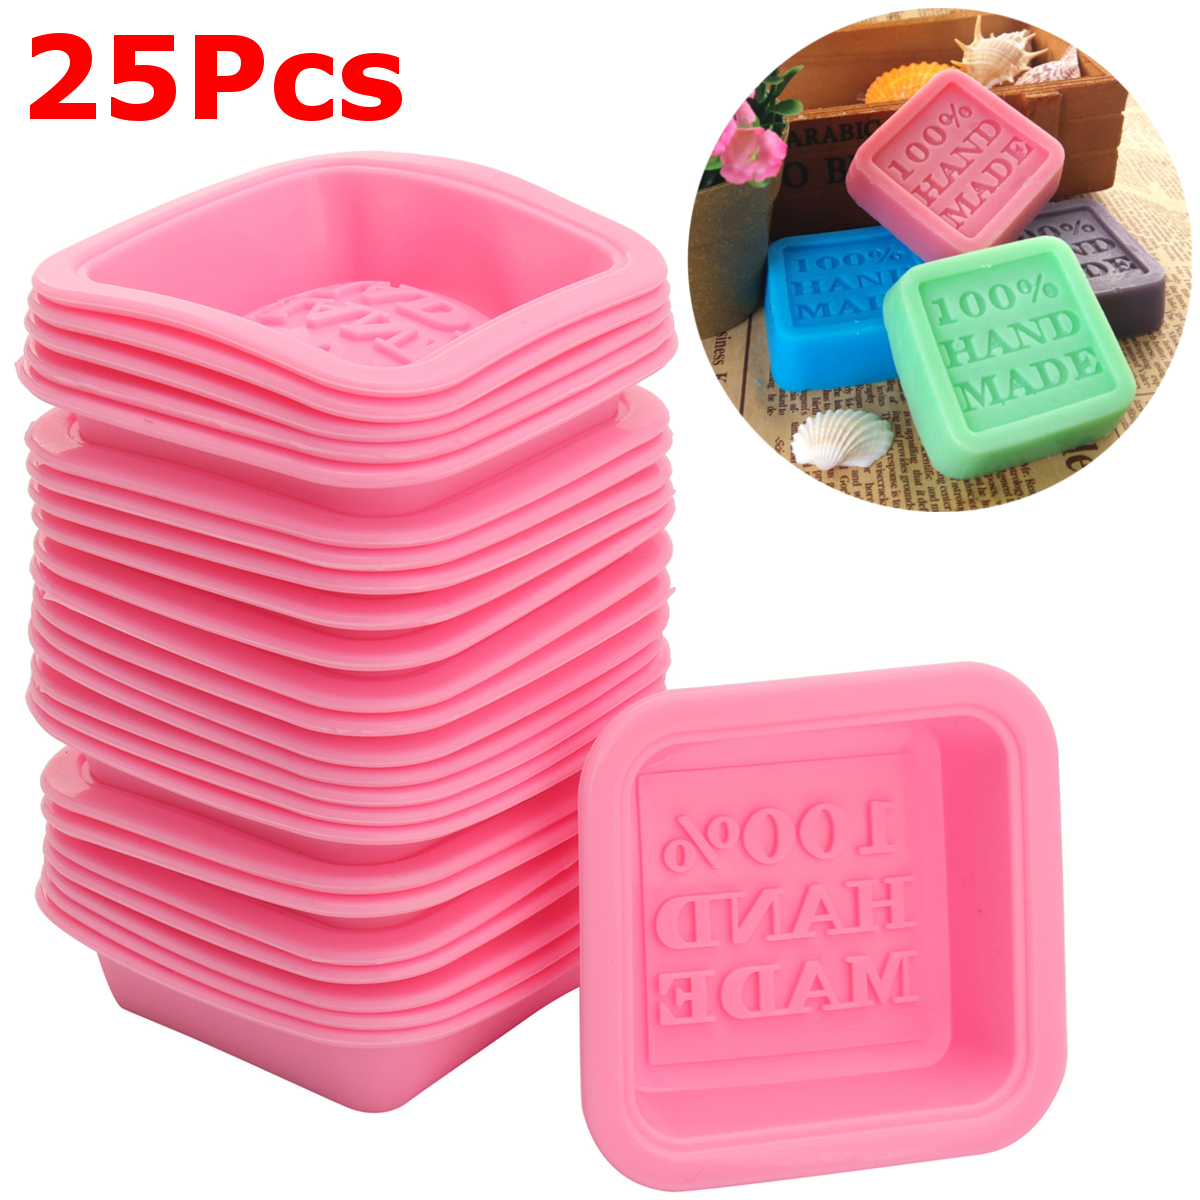 25Pcs Silicone Handmade Soap Mold for Soap Making Baking Mold Cupcake Liners New